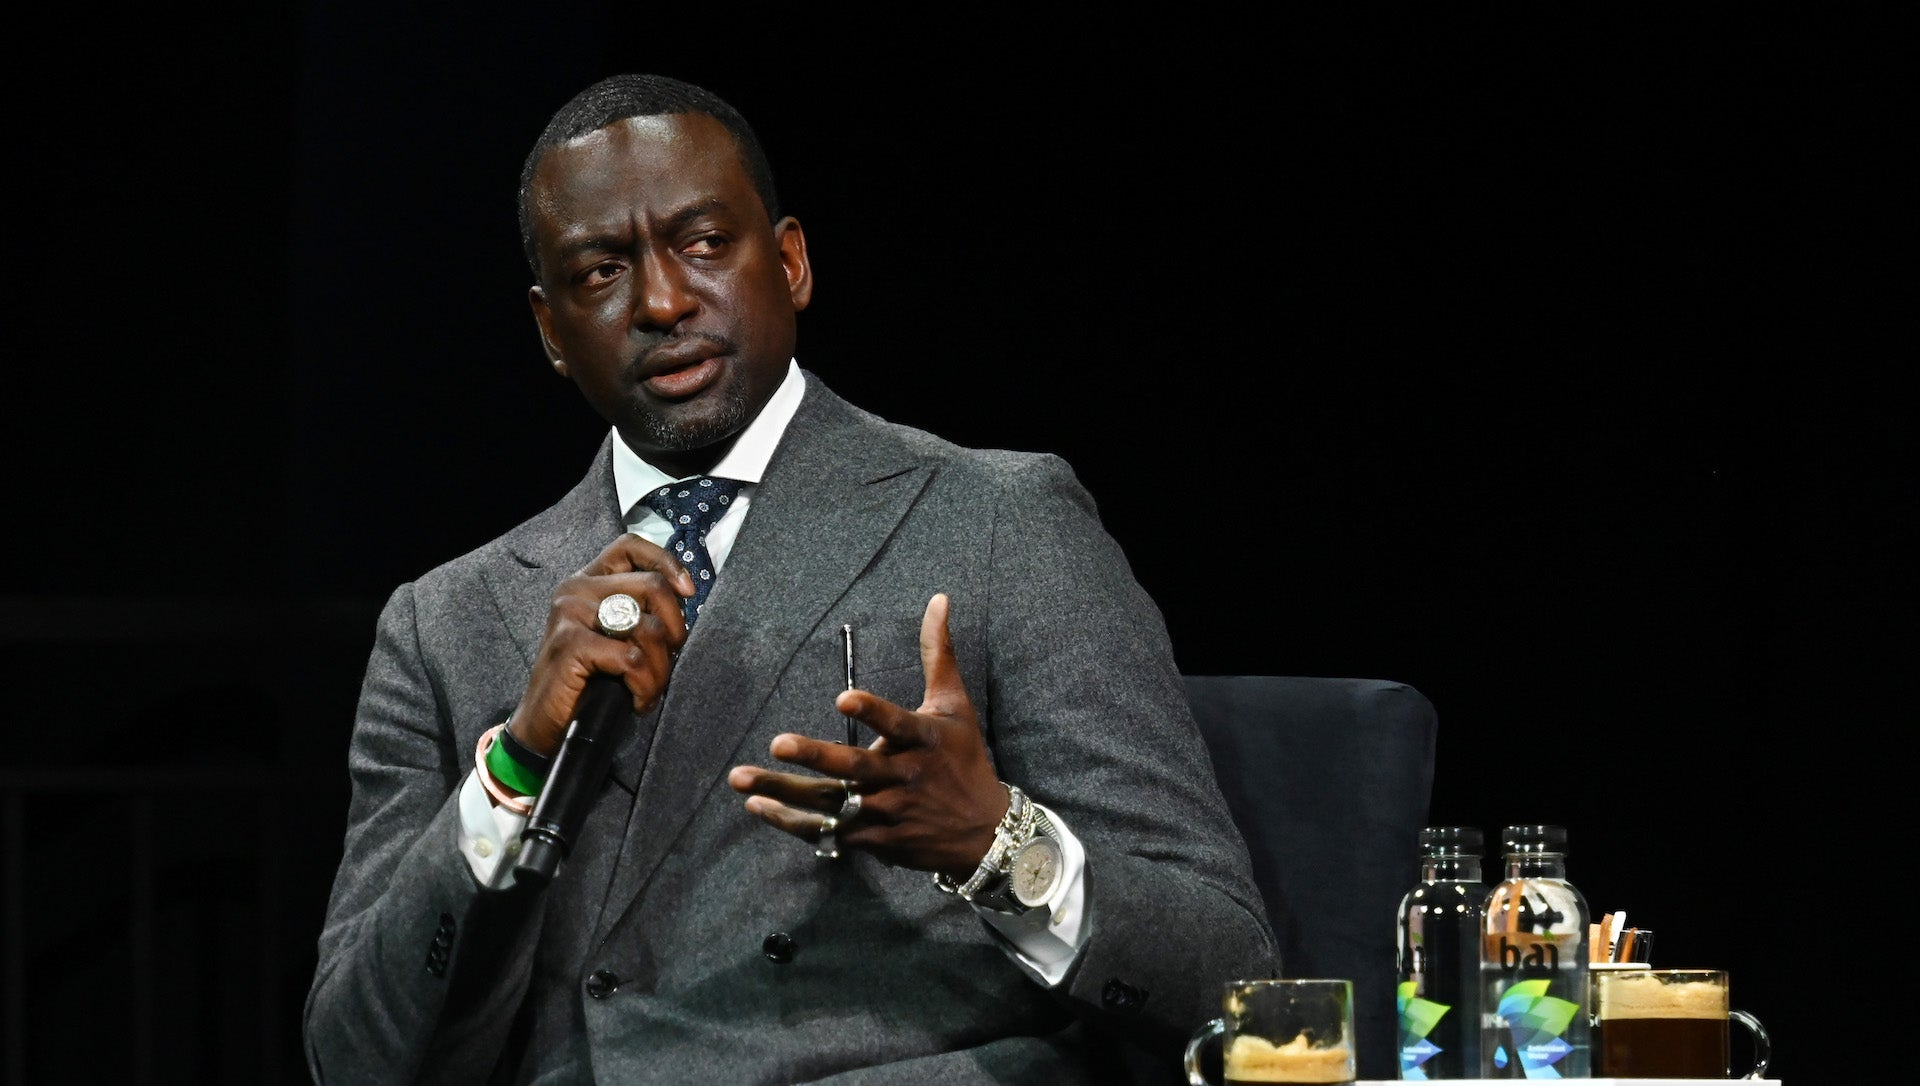 Yusef Salaam Pens Letter To Black Teens Struggling With What's Happening Right Now